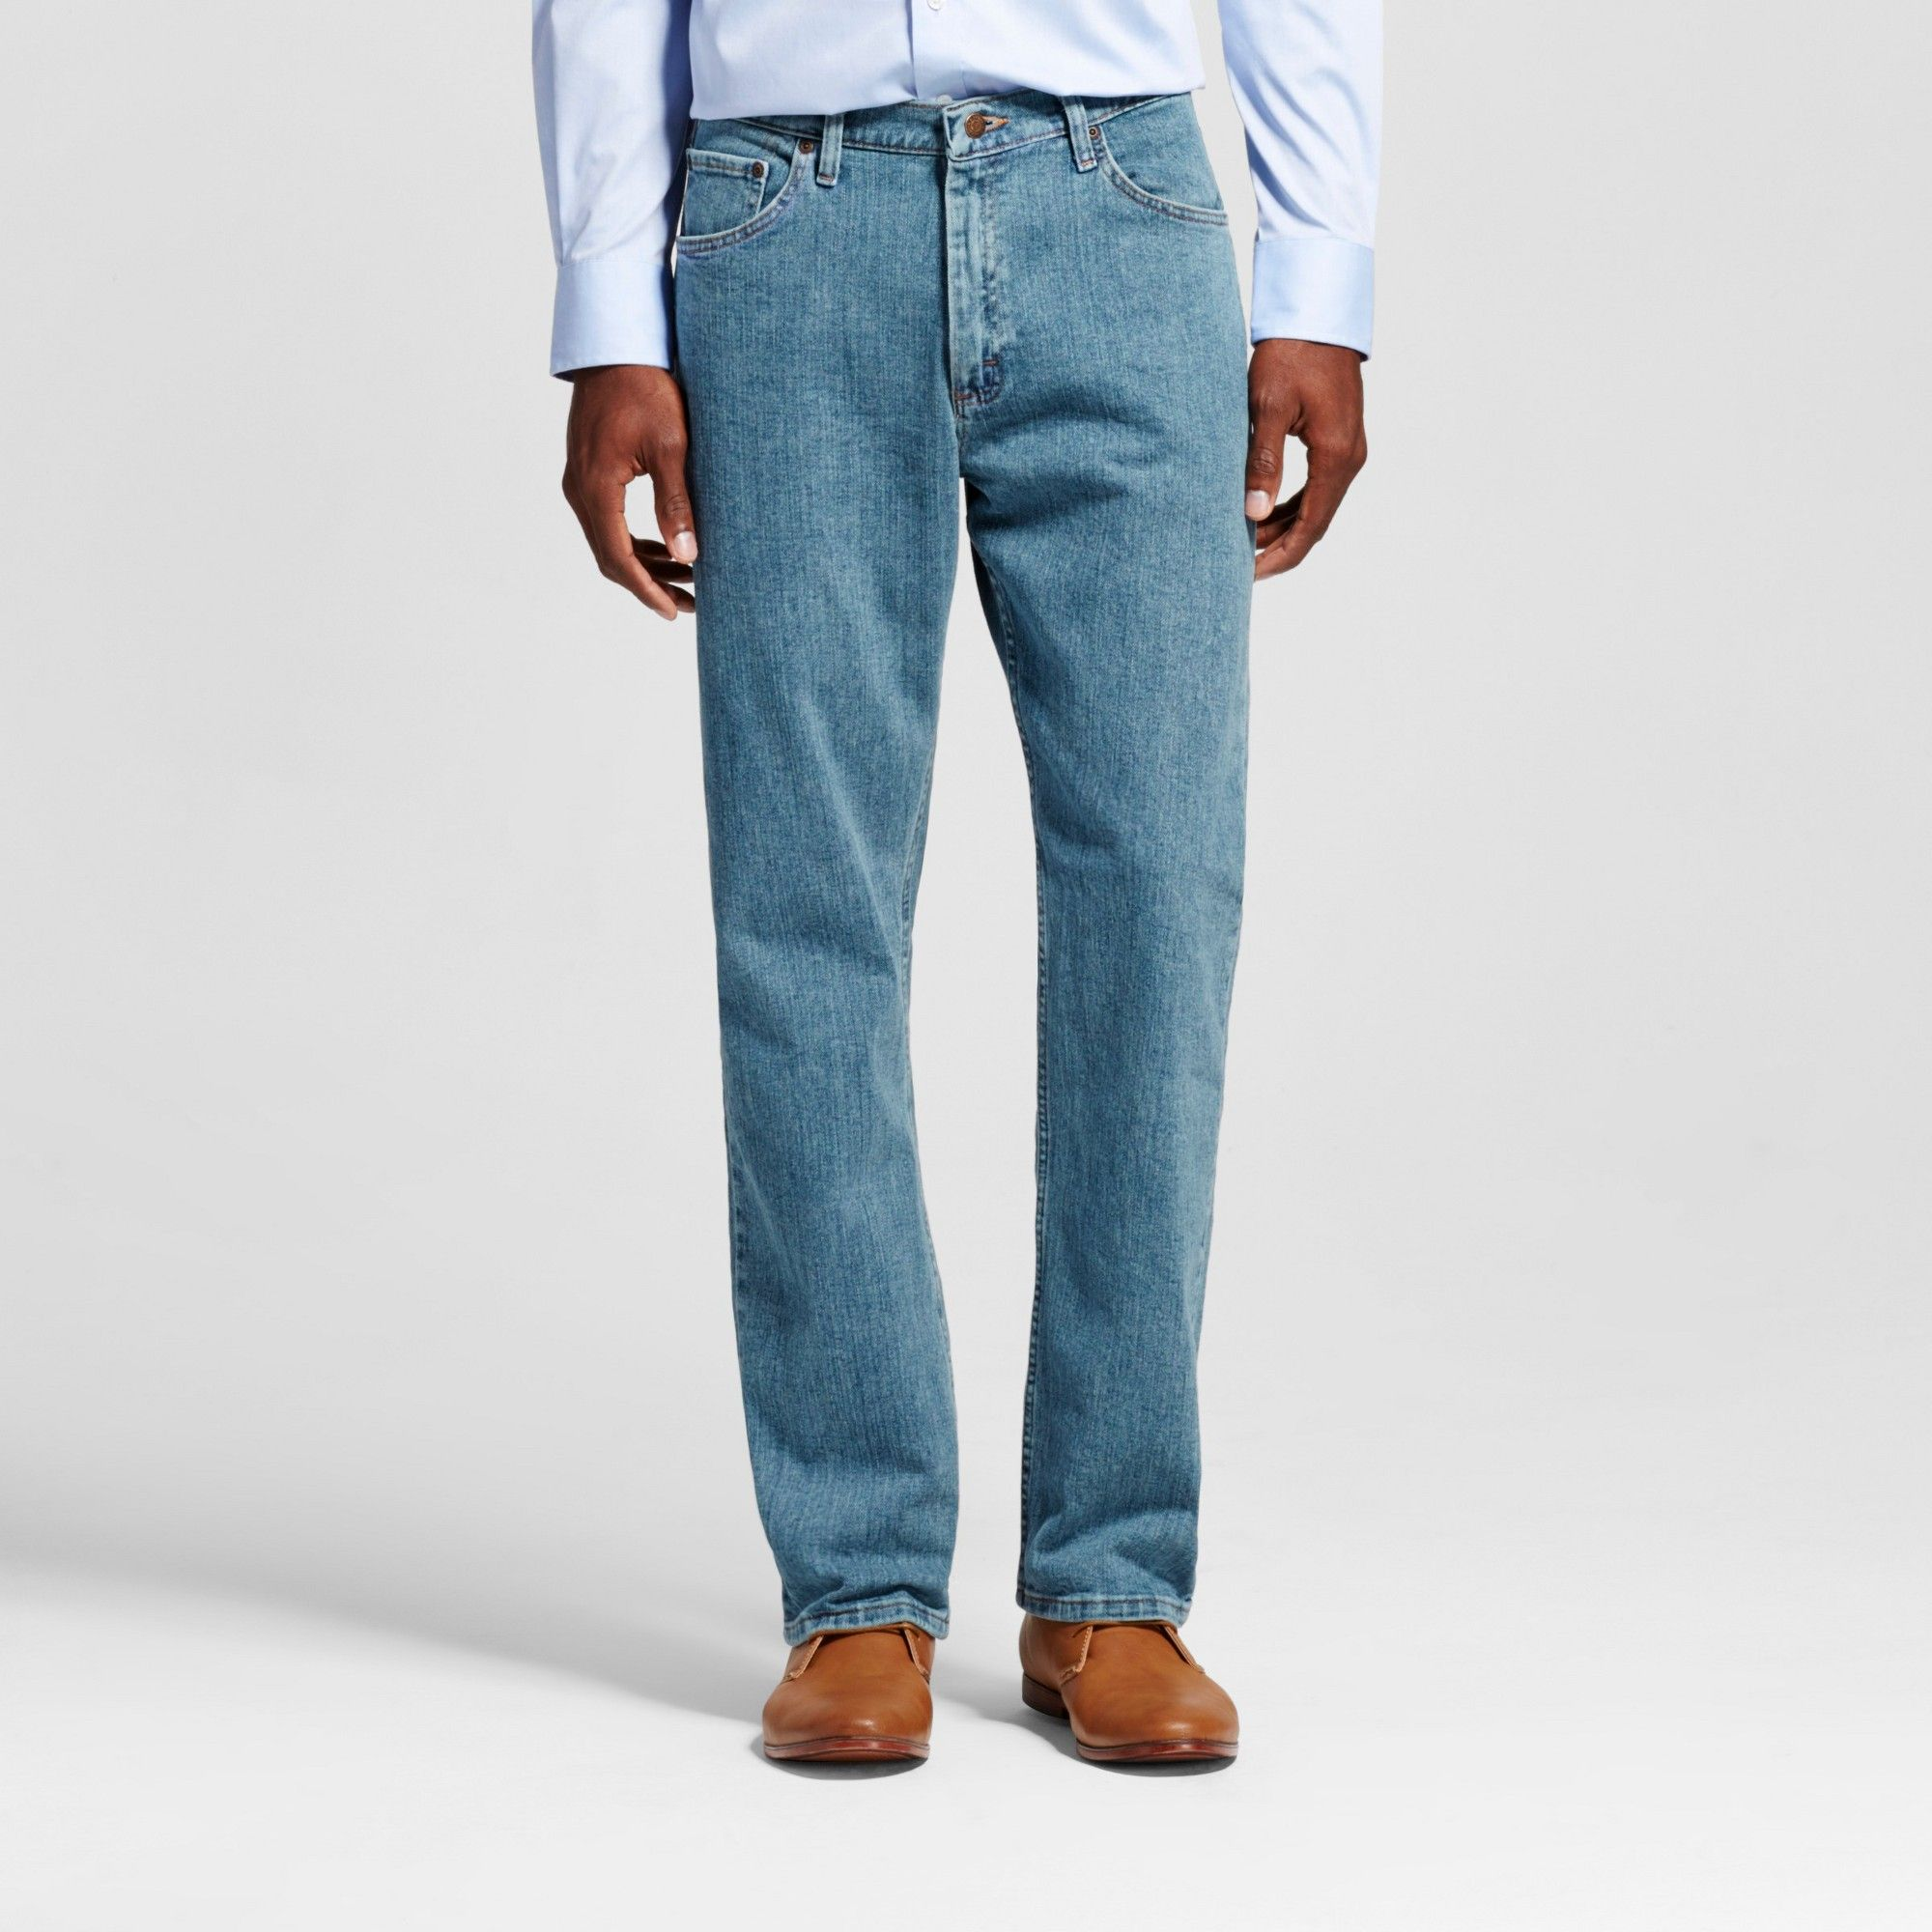 voyage made and straight comforter fit have with a pin of waist high legs comfort jeans